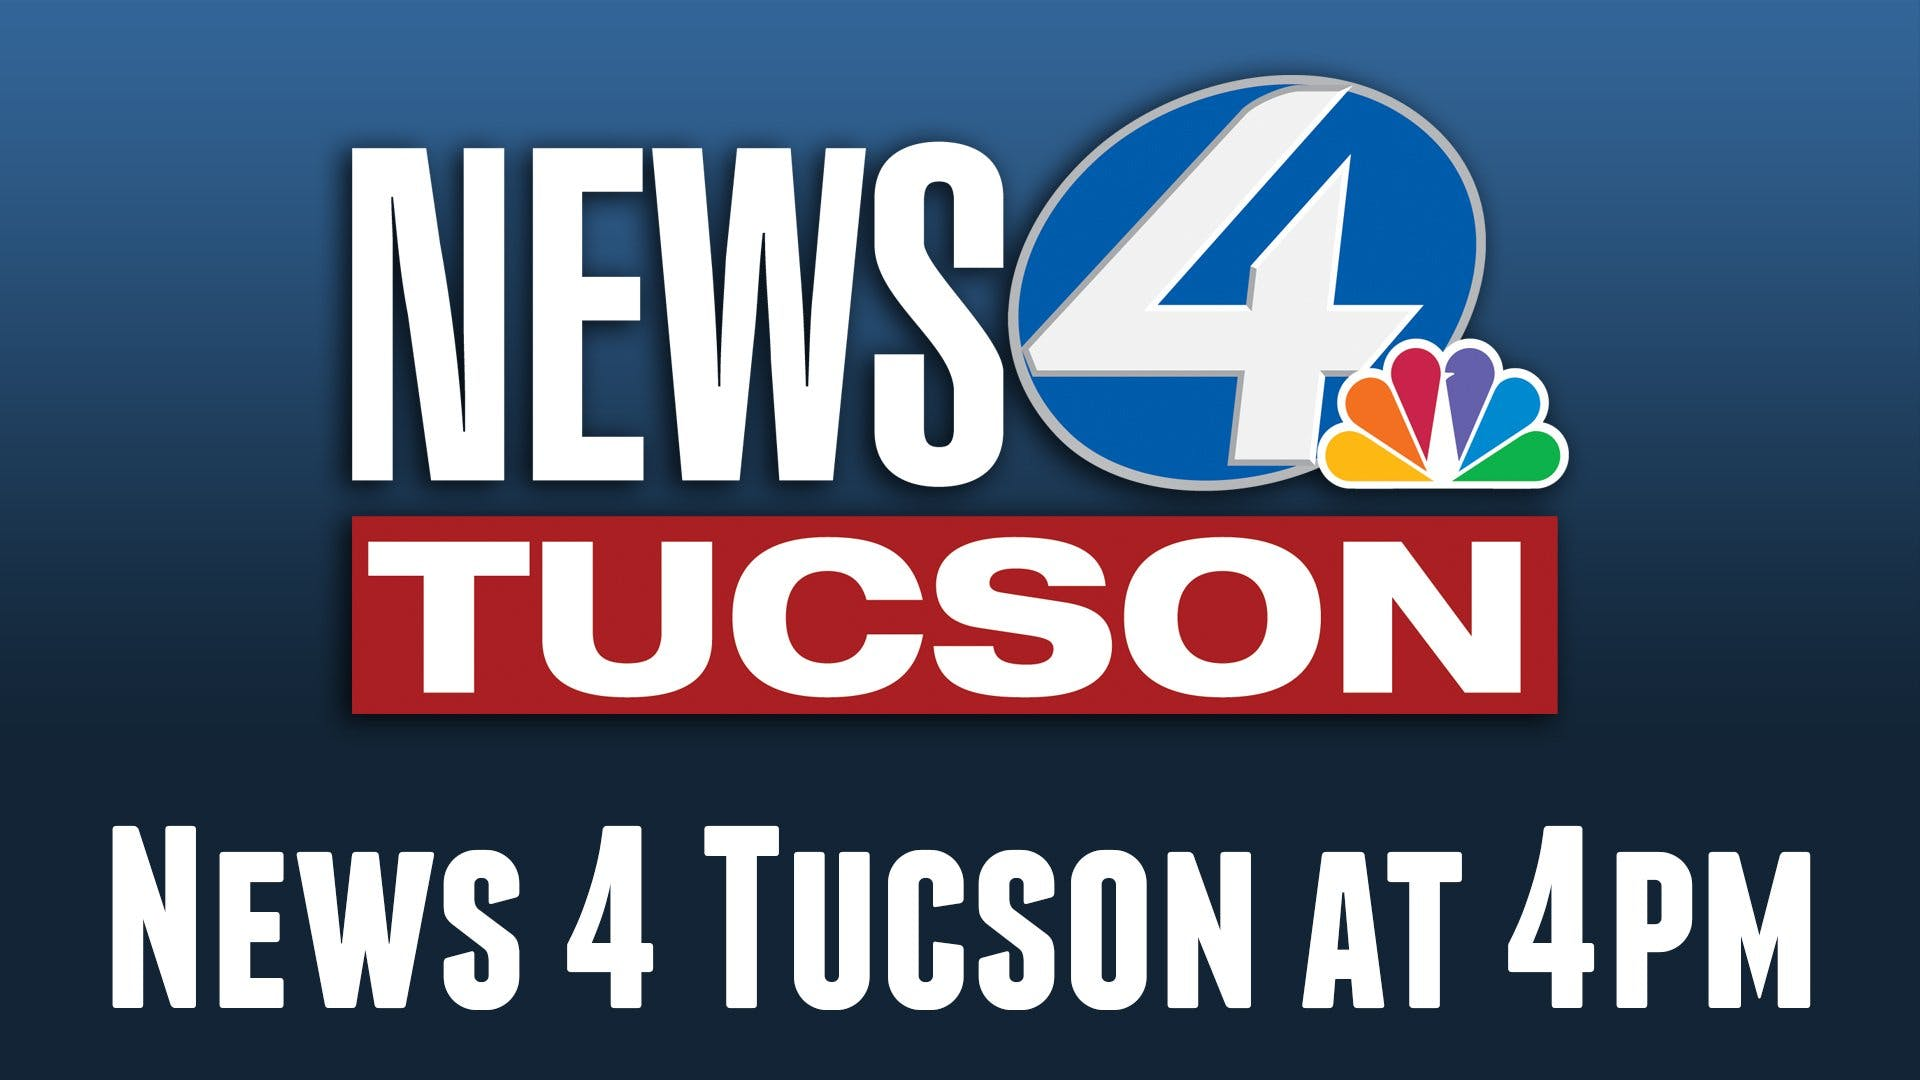 News 4 Tucson >> Watch News 4 Tucson At 4pm Stream On Fubotv Free Trial